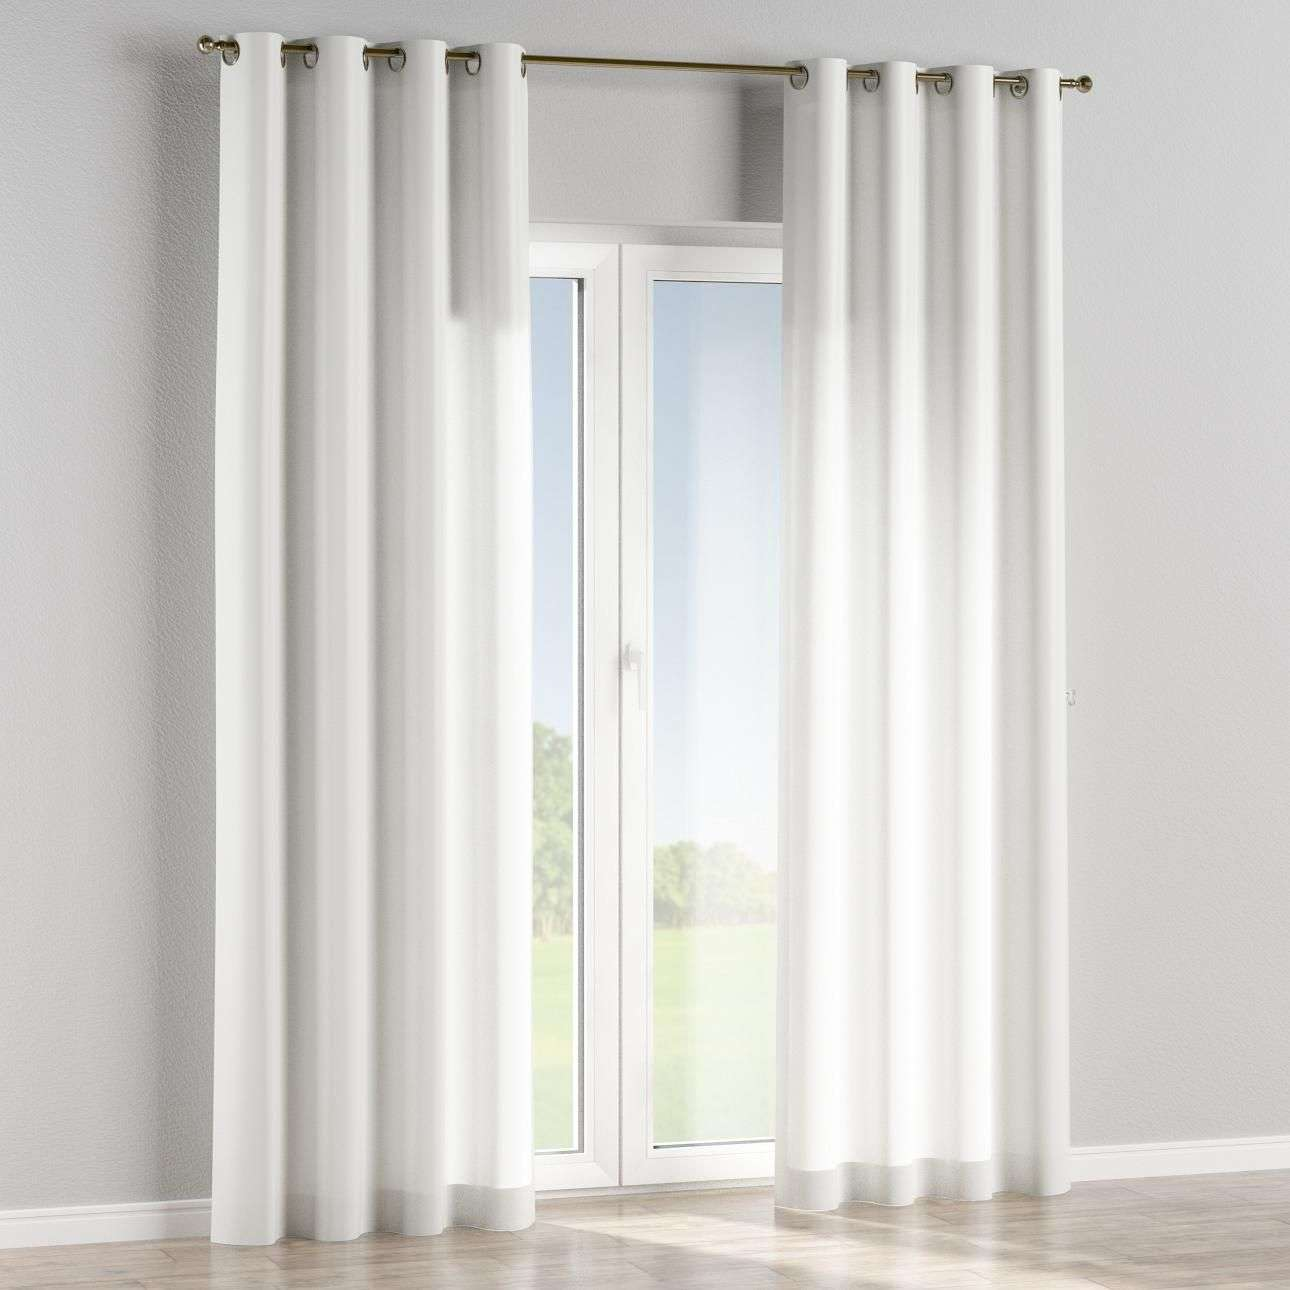 Eyelet lined curtains in collection Rustica, fabric: 140-32